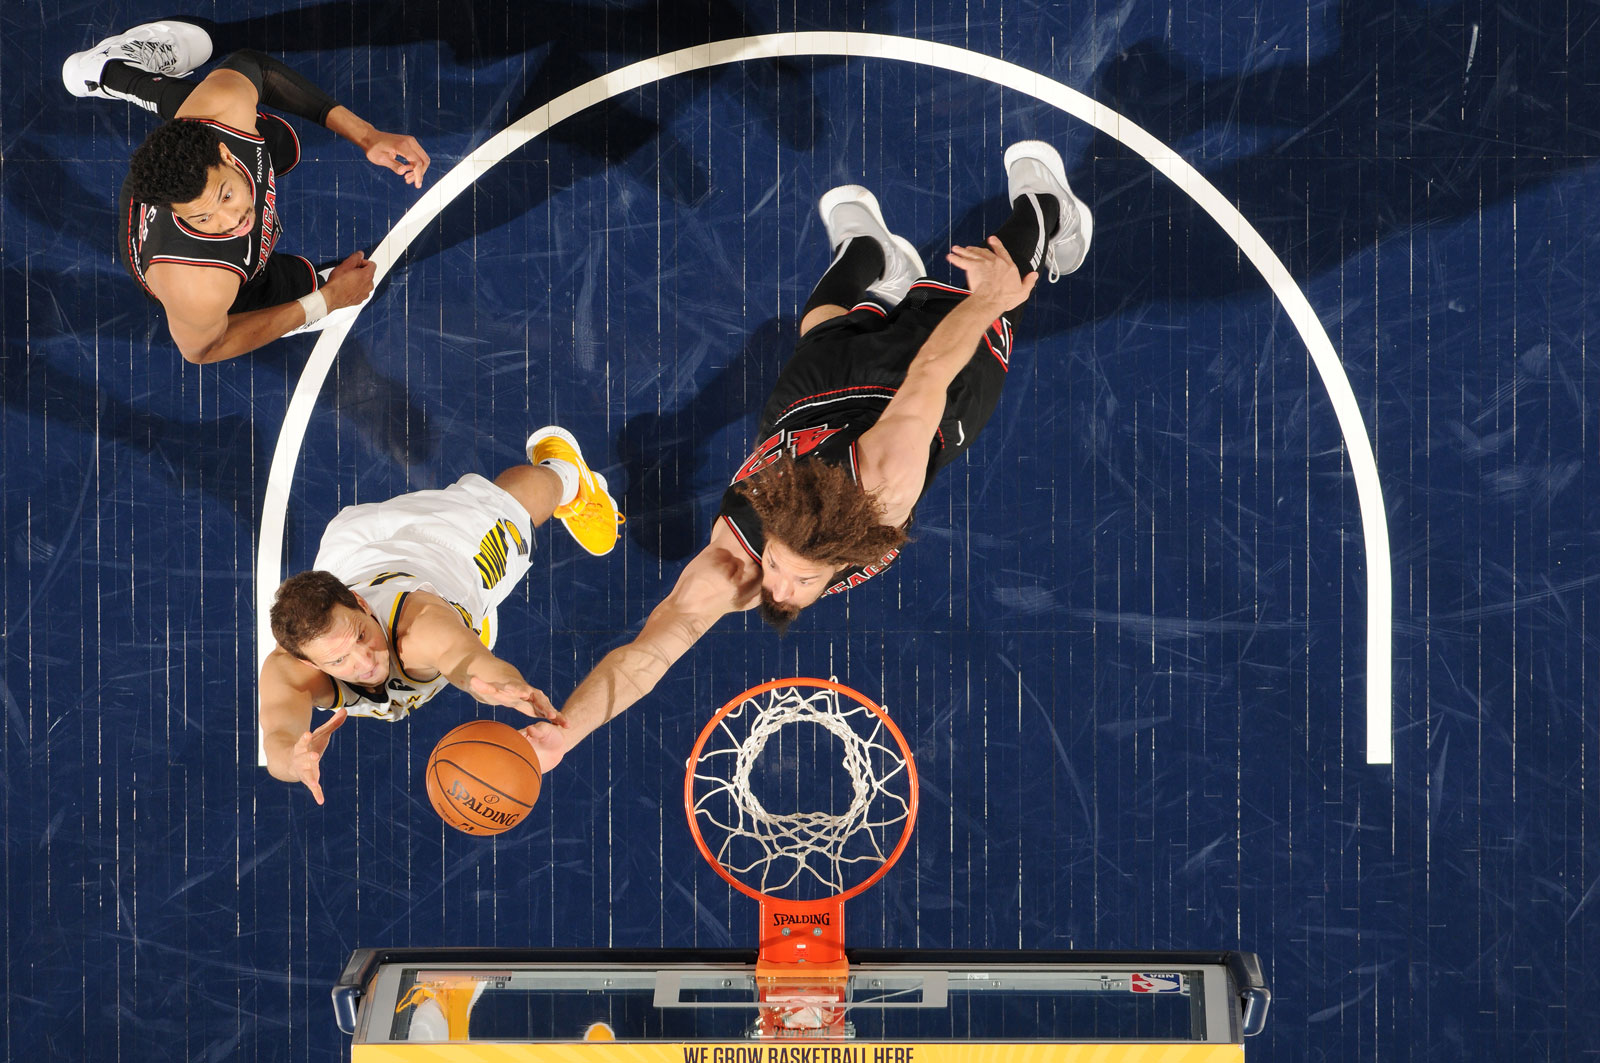 Robin Lopez #42 of the Chicago Bulls and Bojan Bogdanovic #44 of the Indiana Pacers go up for a rebound on March 5, 2019 at Bankers Life Fieldhouse in Indianapolis, Indiana.